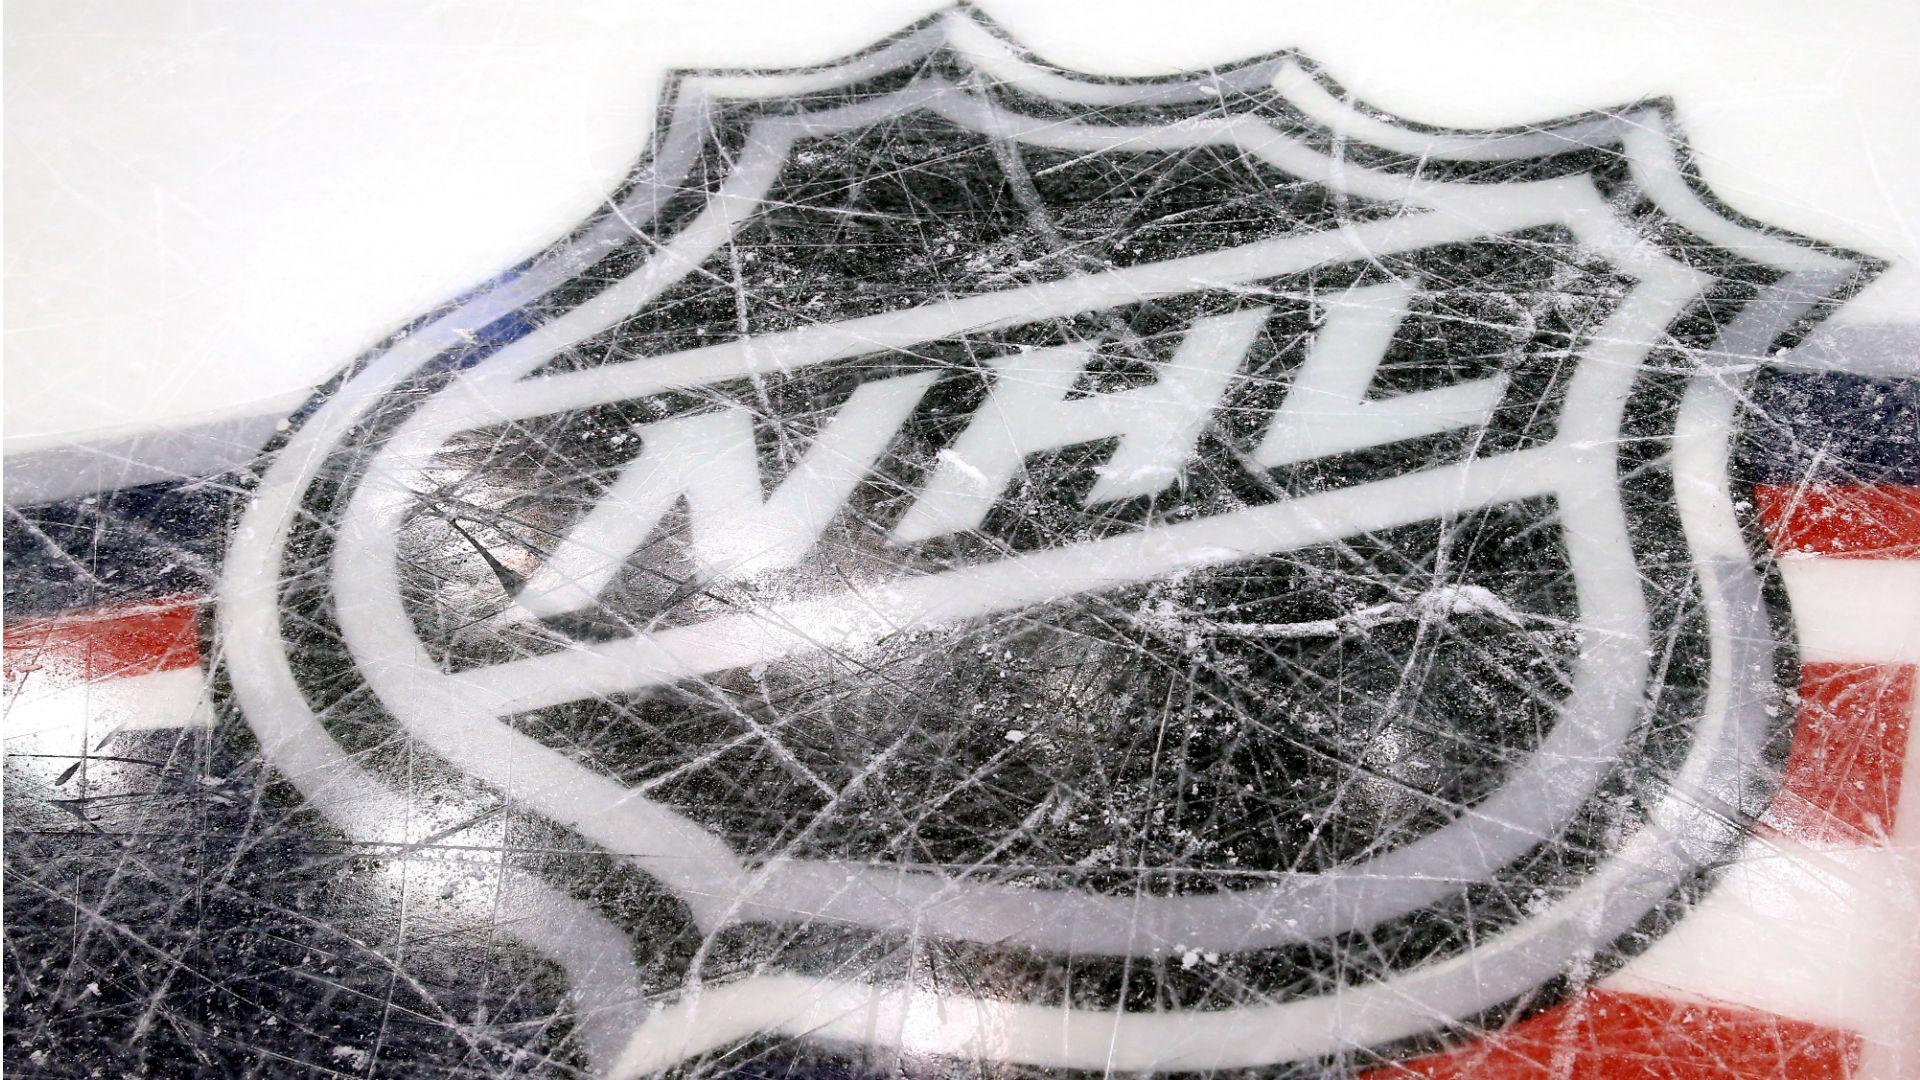 NHL STANDINGS PREDICTIONS FOR 2018/19 SEASON: ATLANTIC DIVISION